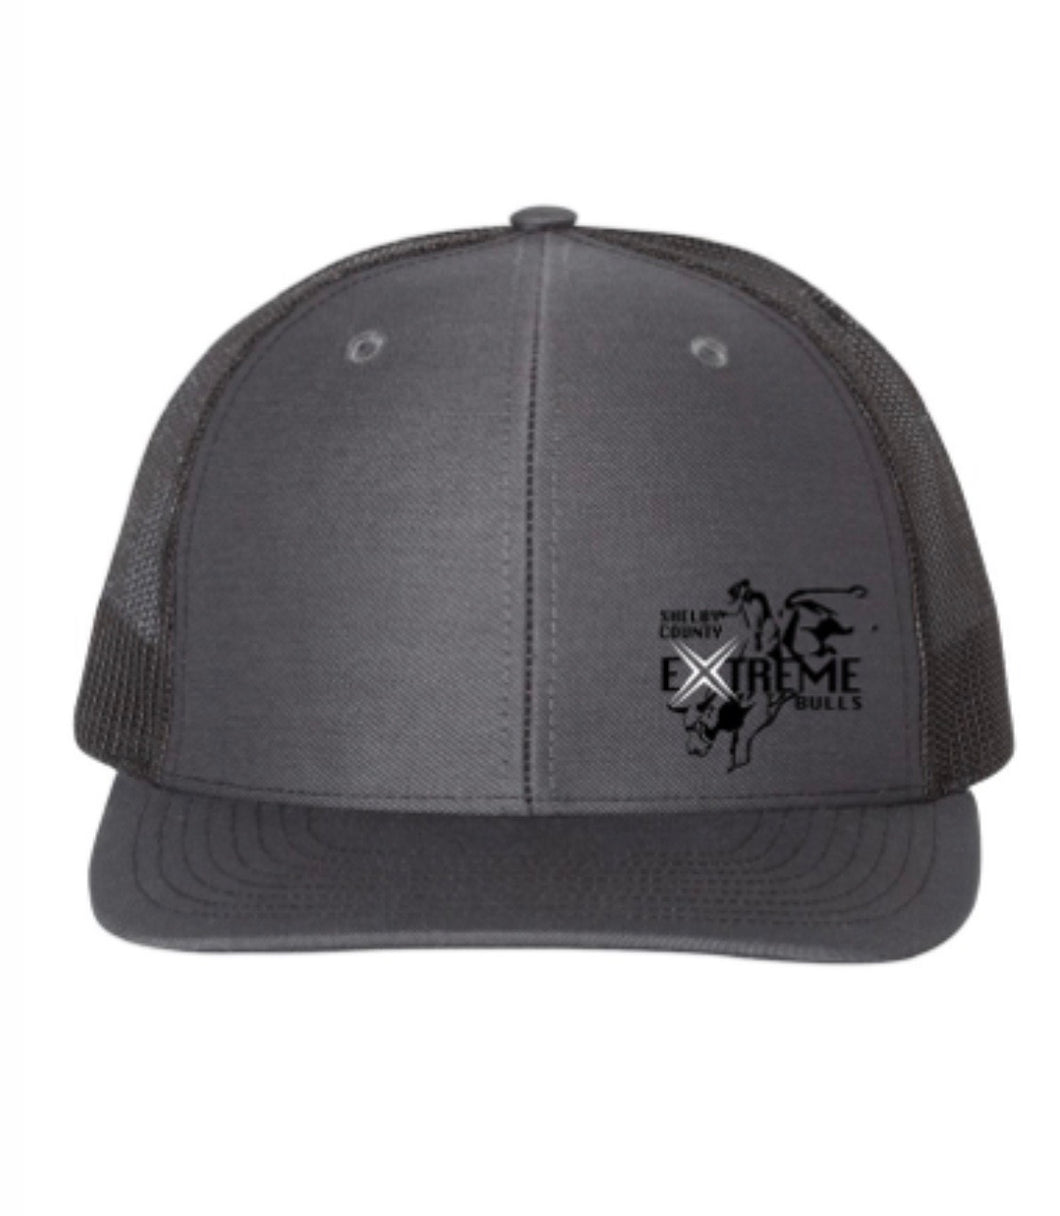 Copy of Shelby County Extreme Bulls StitchedHat Pre-Order